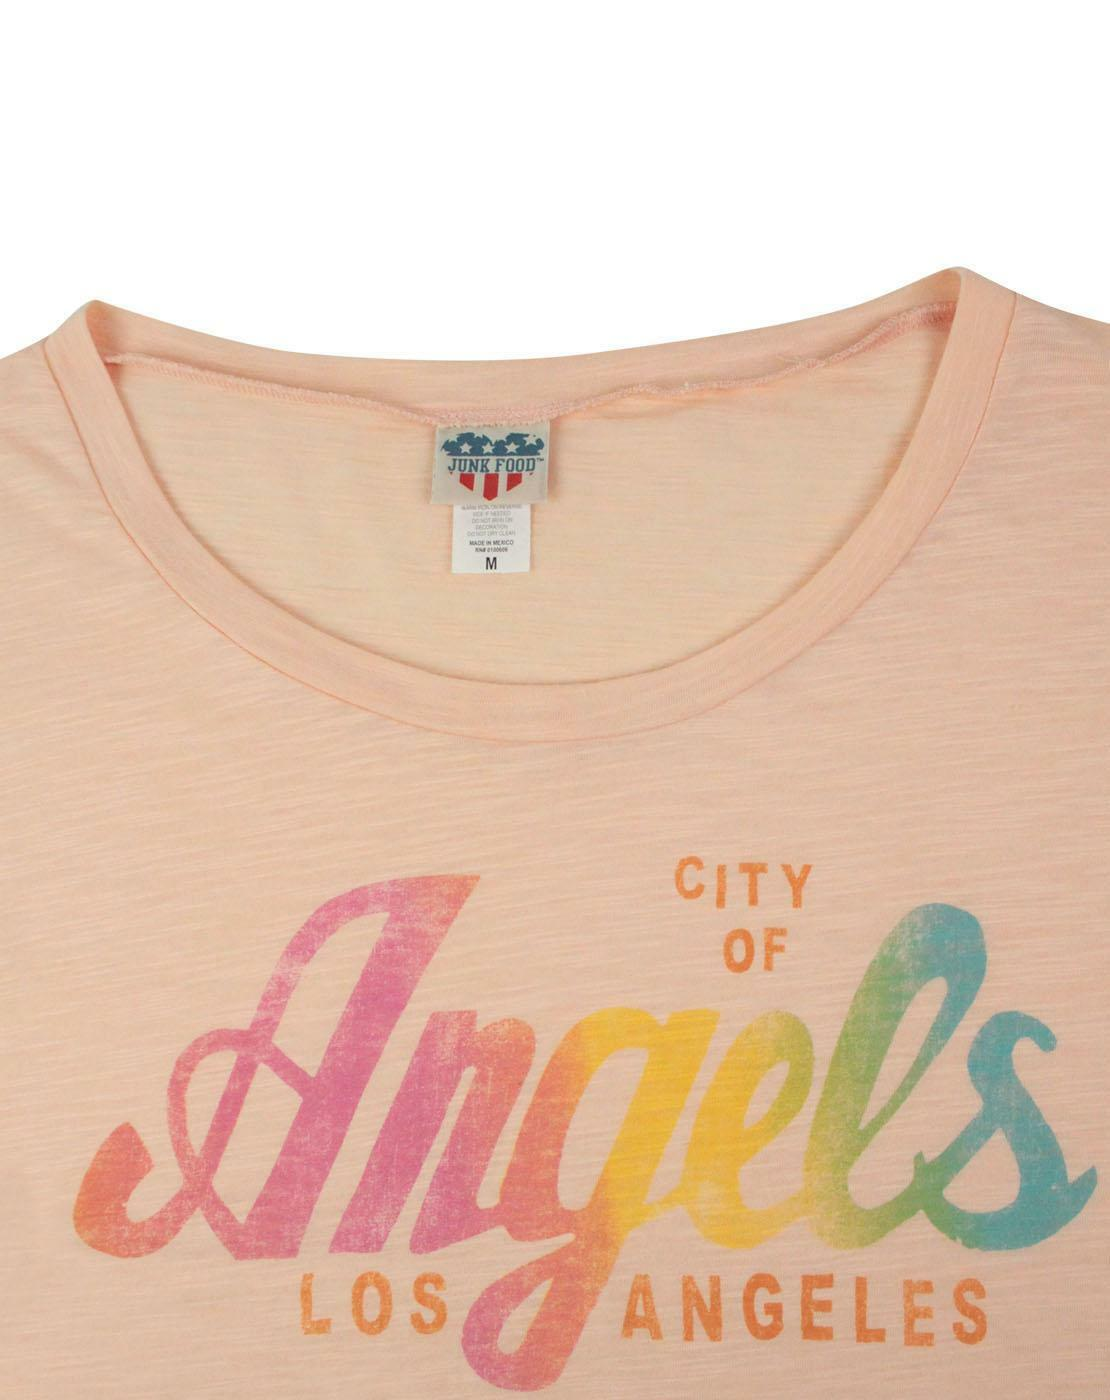 Junk-Food-Los-Angeles-City-Of-Angels-Women-039-s-T-Shirt thumbnail 8